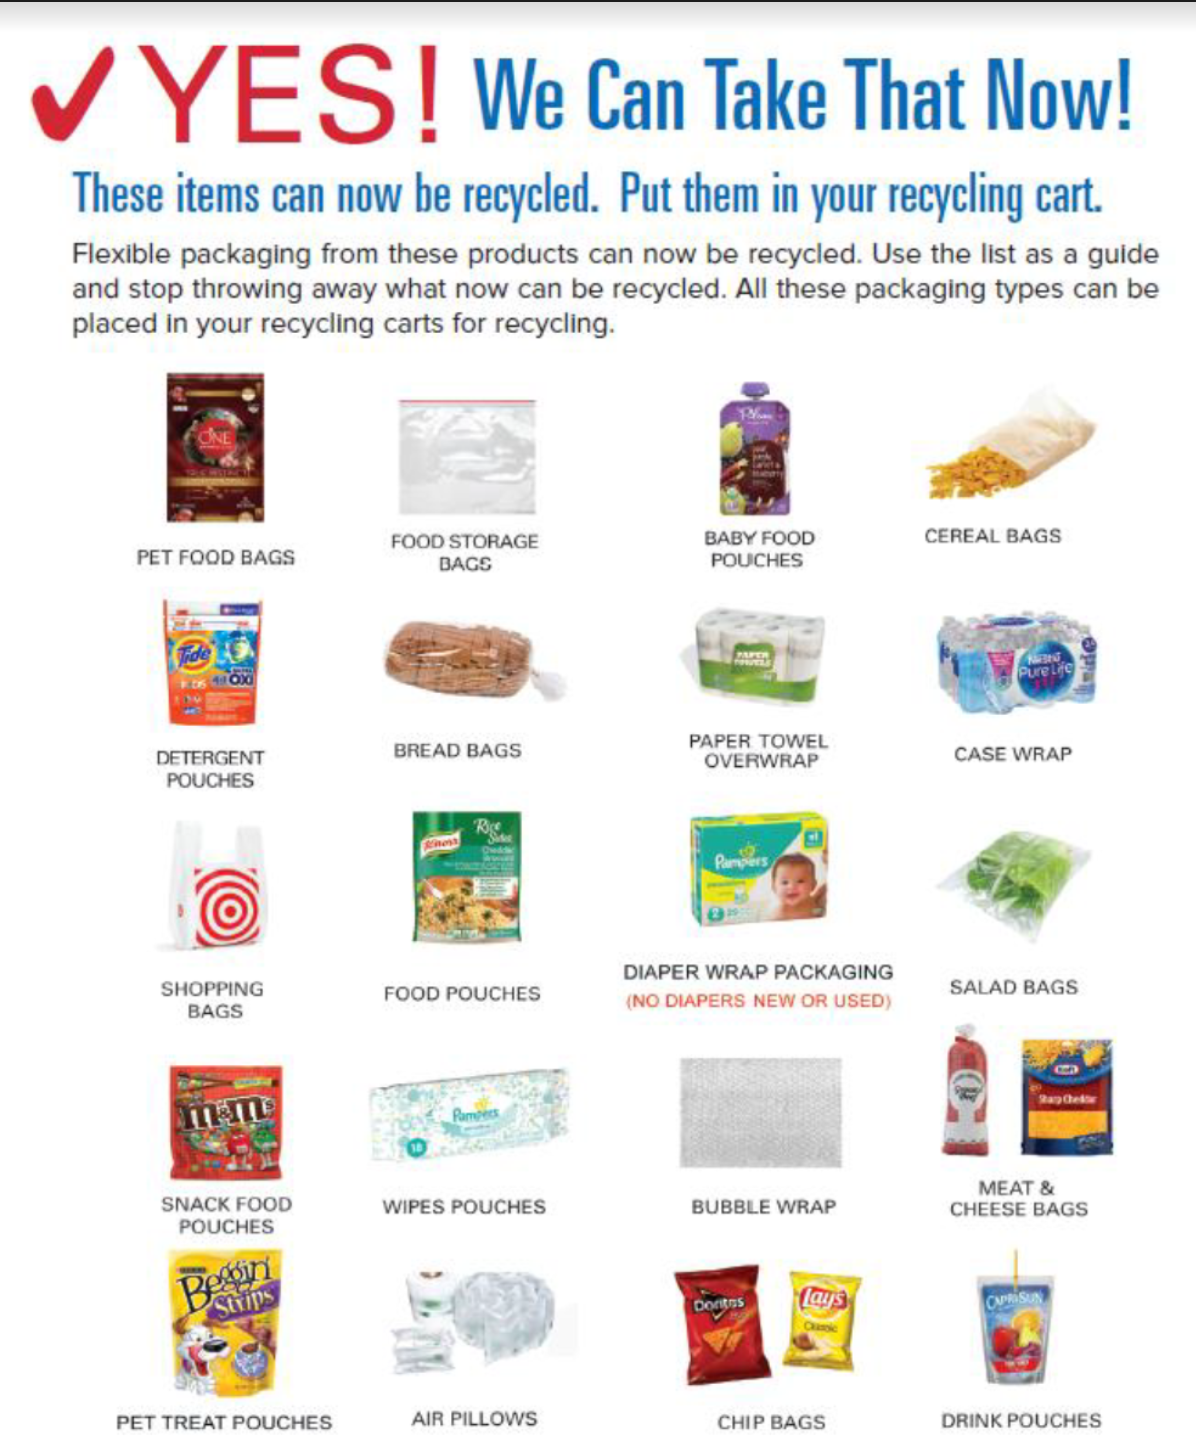 Flyer for Pottstown, Pennsylvania pilot curbside recycling program of flexible plastic packaging